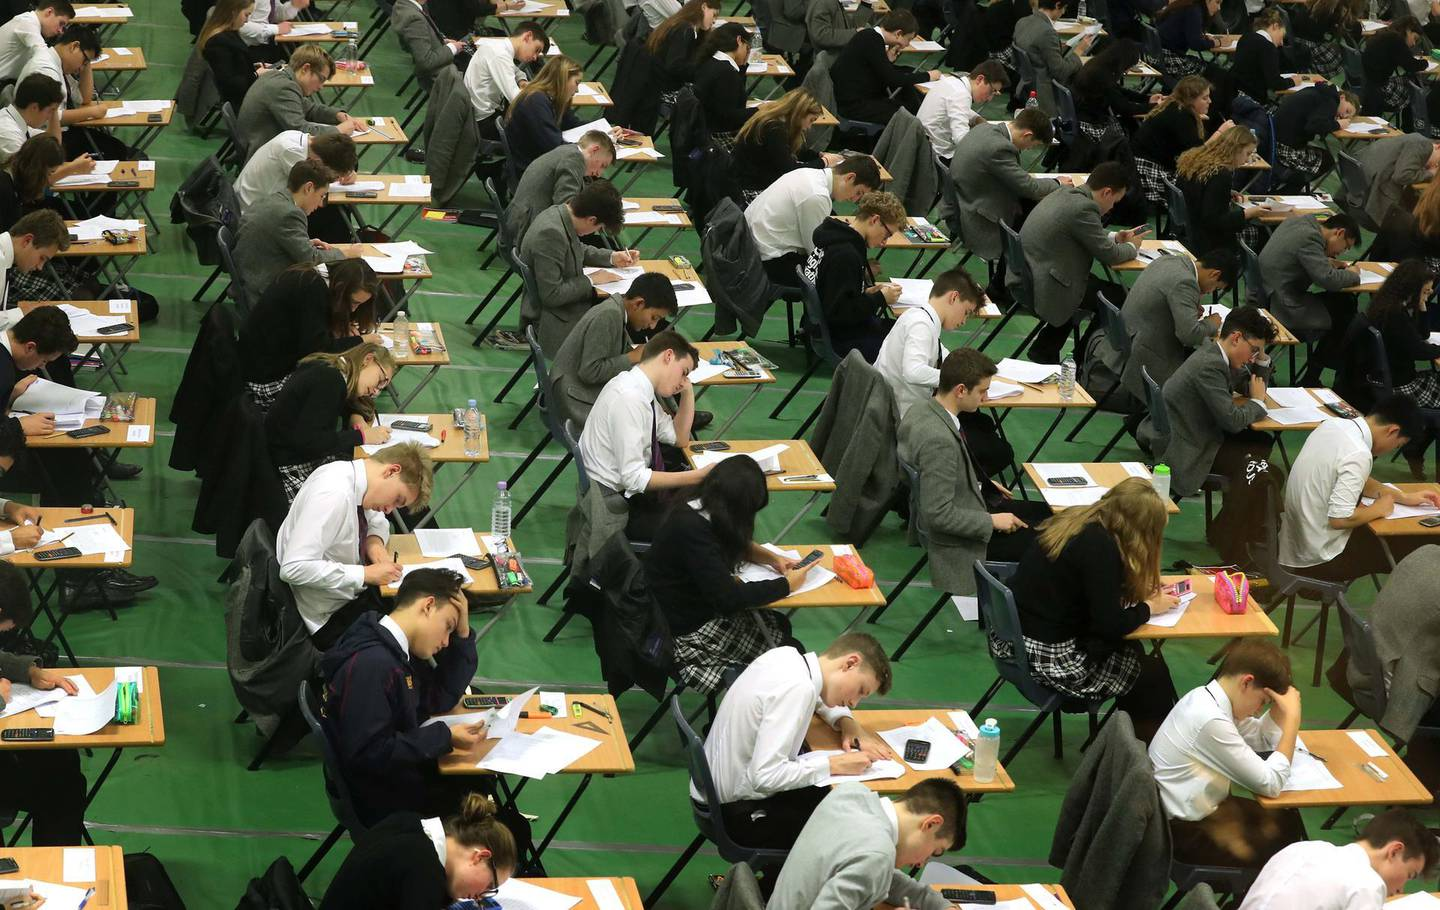 (PERMISSION GRANTED FOR PICTURES OF STUDENTS ) Students sit their GCSE mock exams at Brighton College in Brighton, East Sussex. (Photo by Gareth Fuller/PA Images via Getty Images)